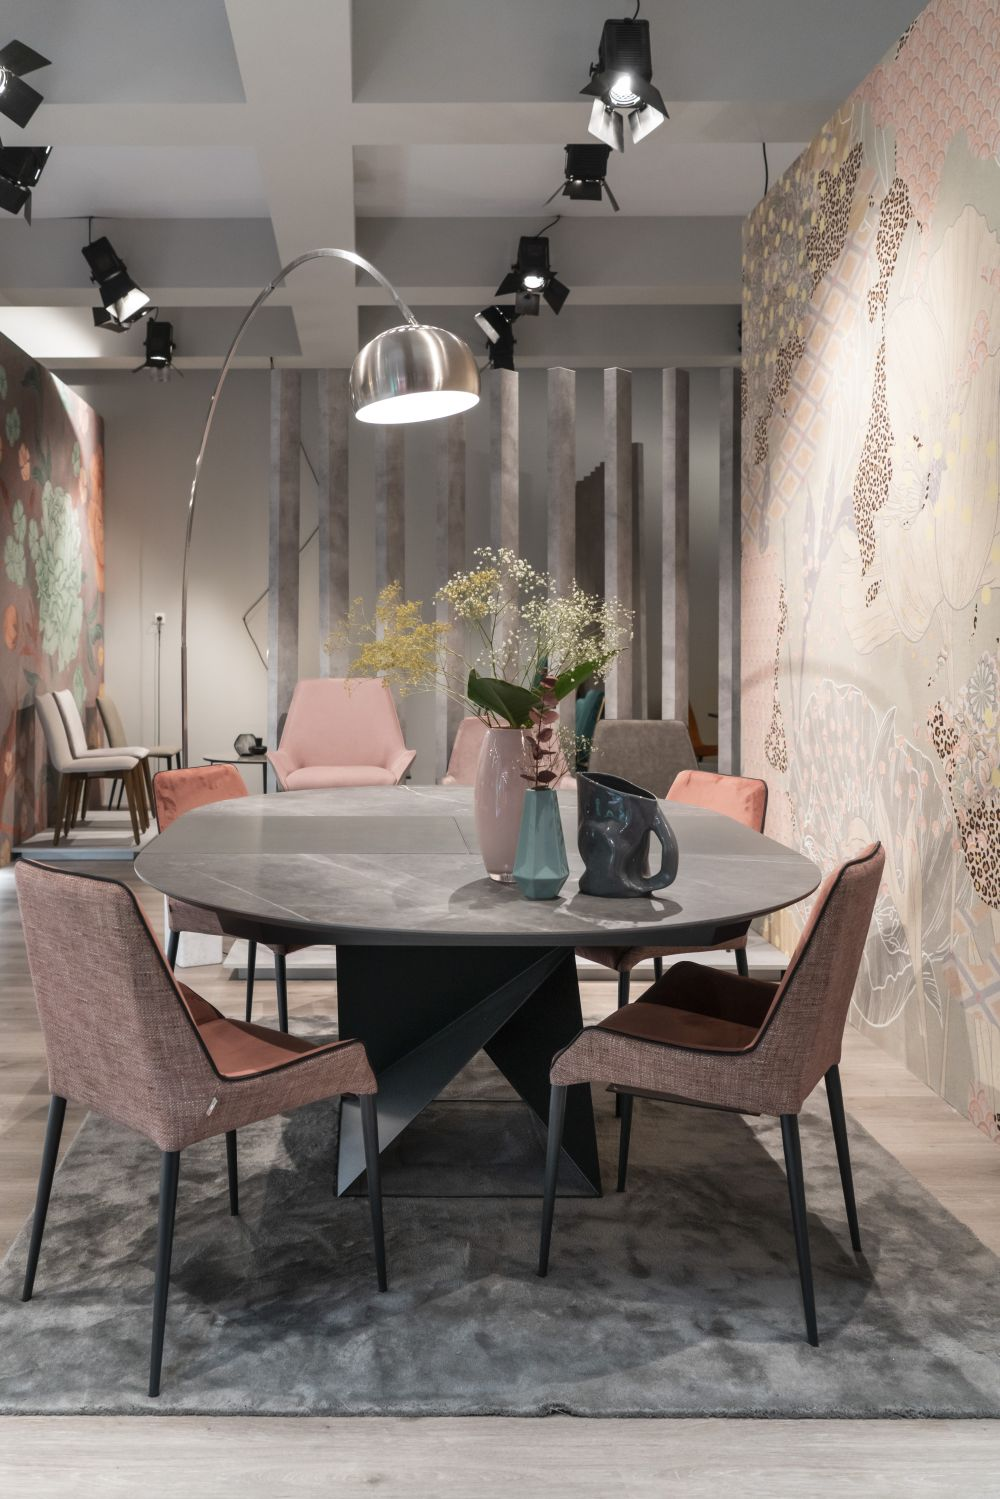 1569686259 388 modern dining tables that inspire you to reimagine your home - Modern Dining Tables That Inspire You To Reimagine Your Home